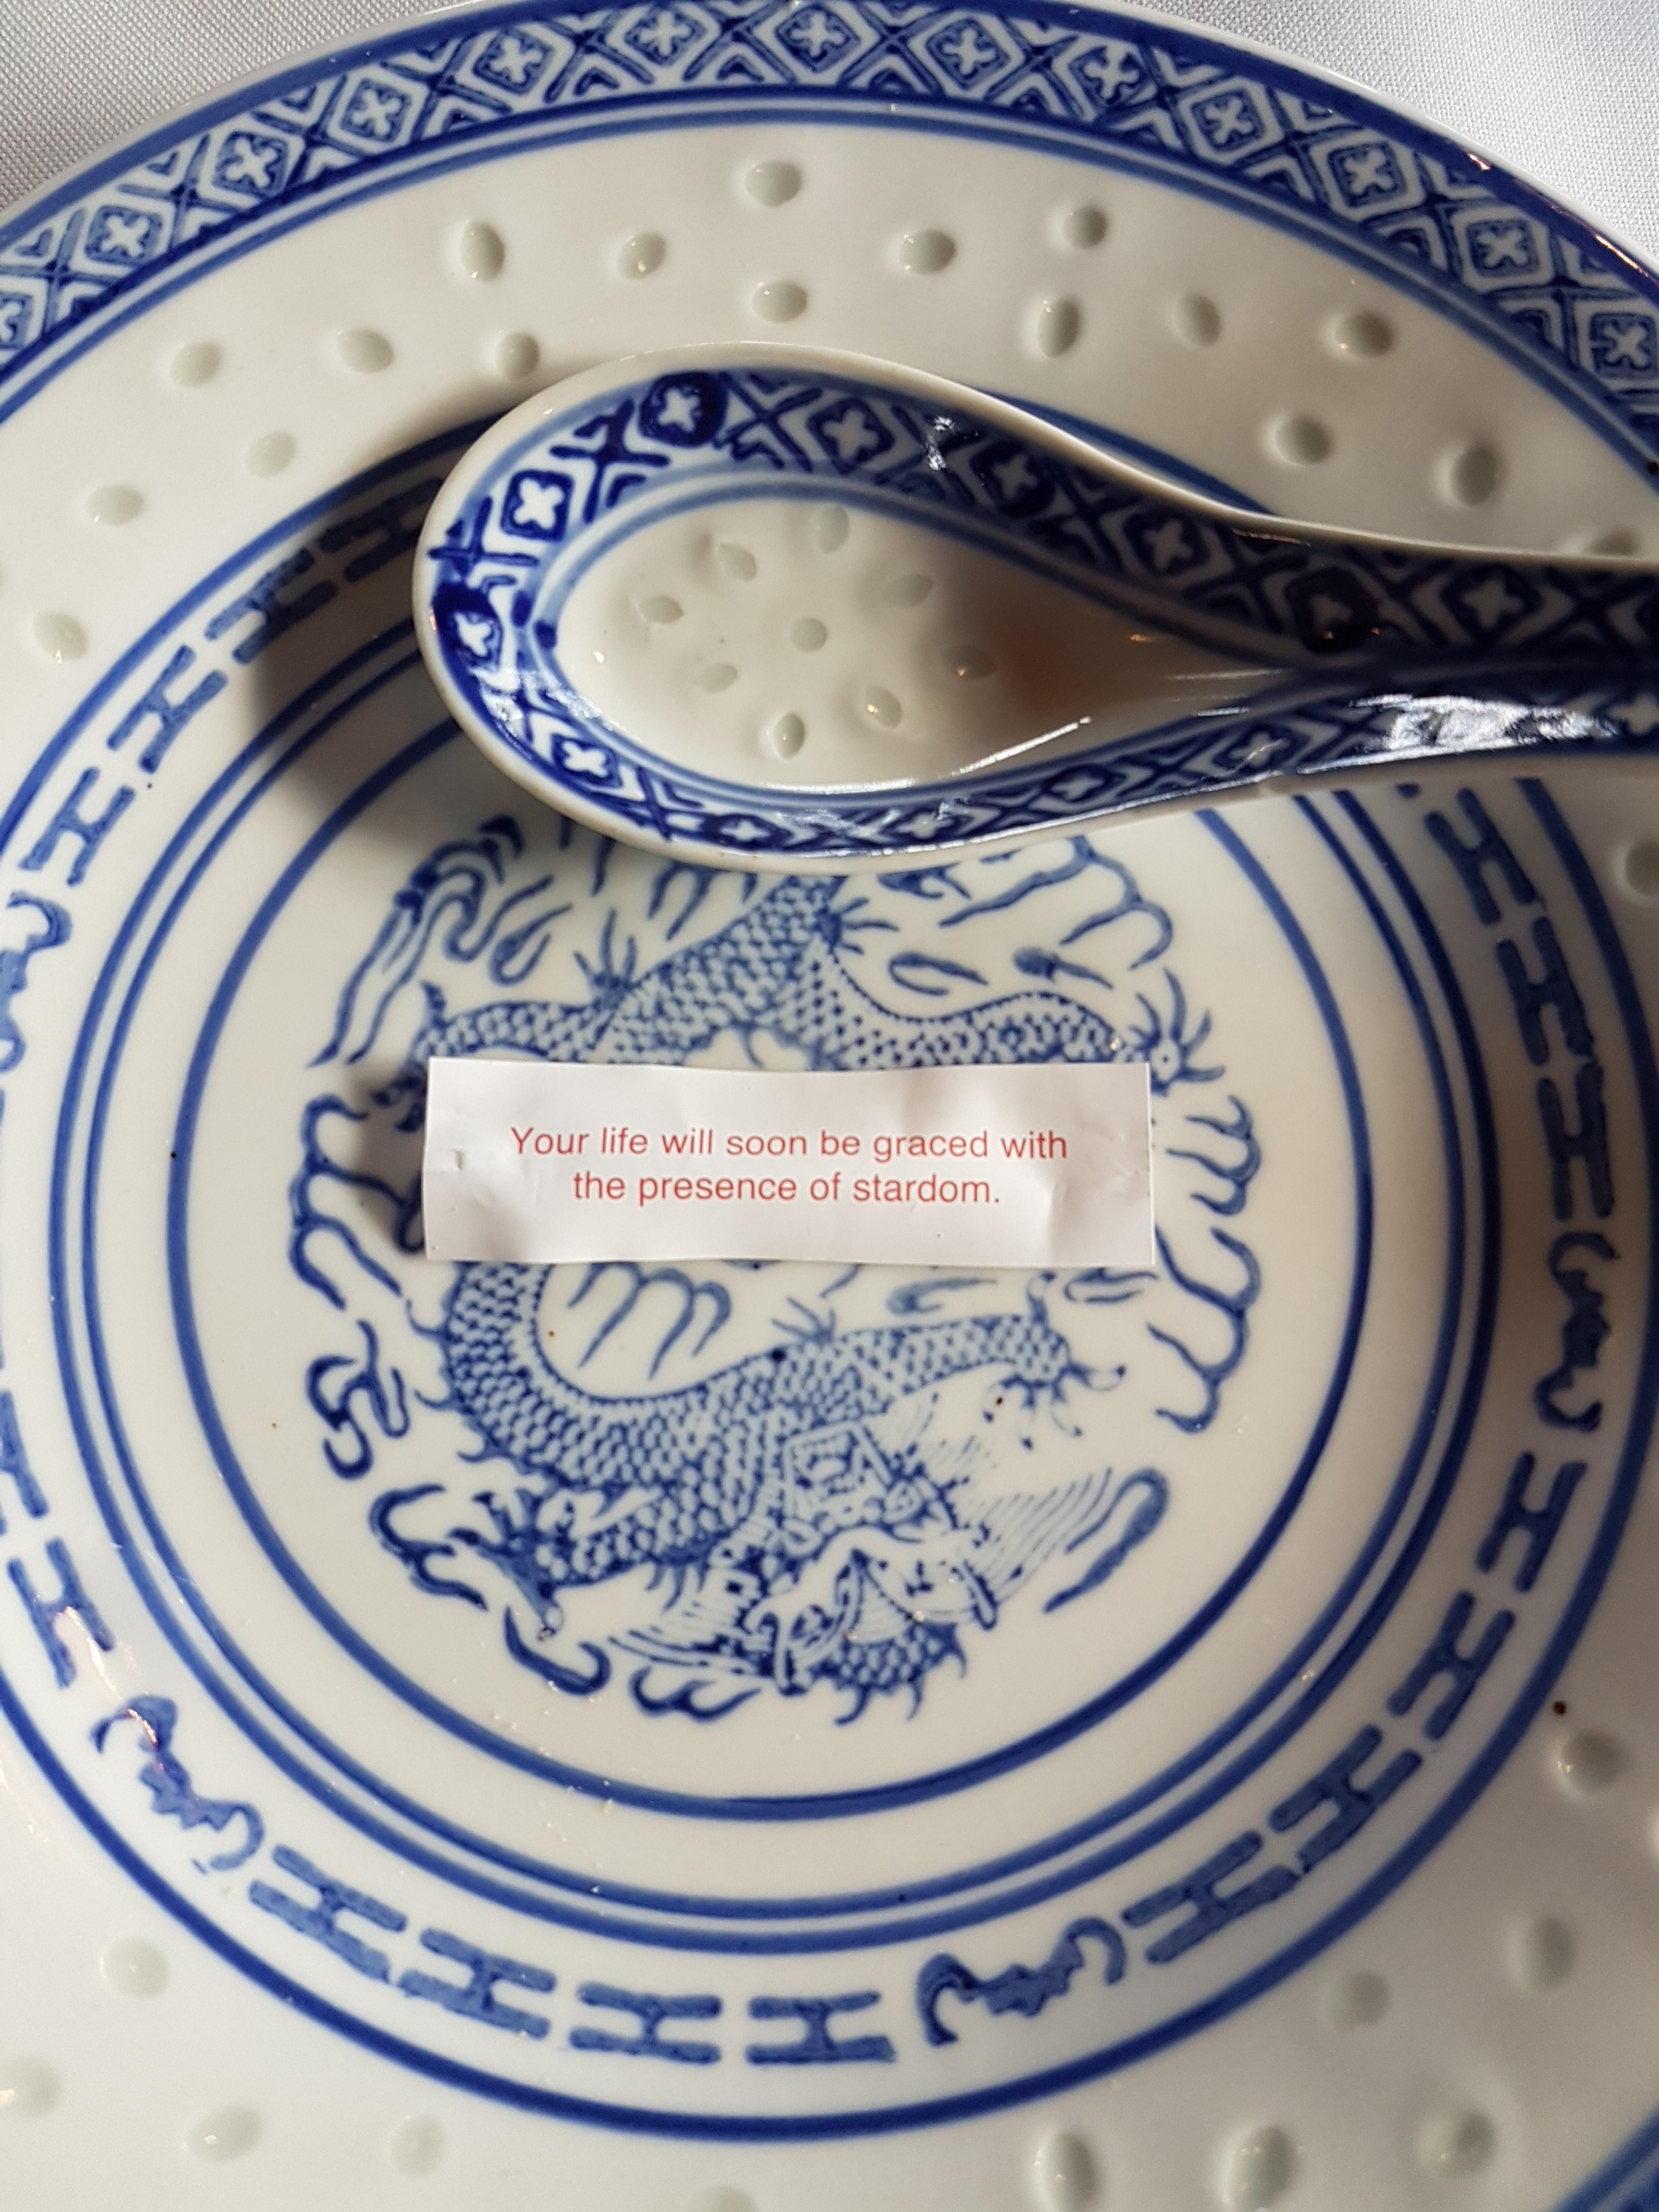 My Chinese fortune